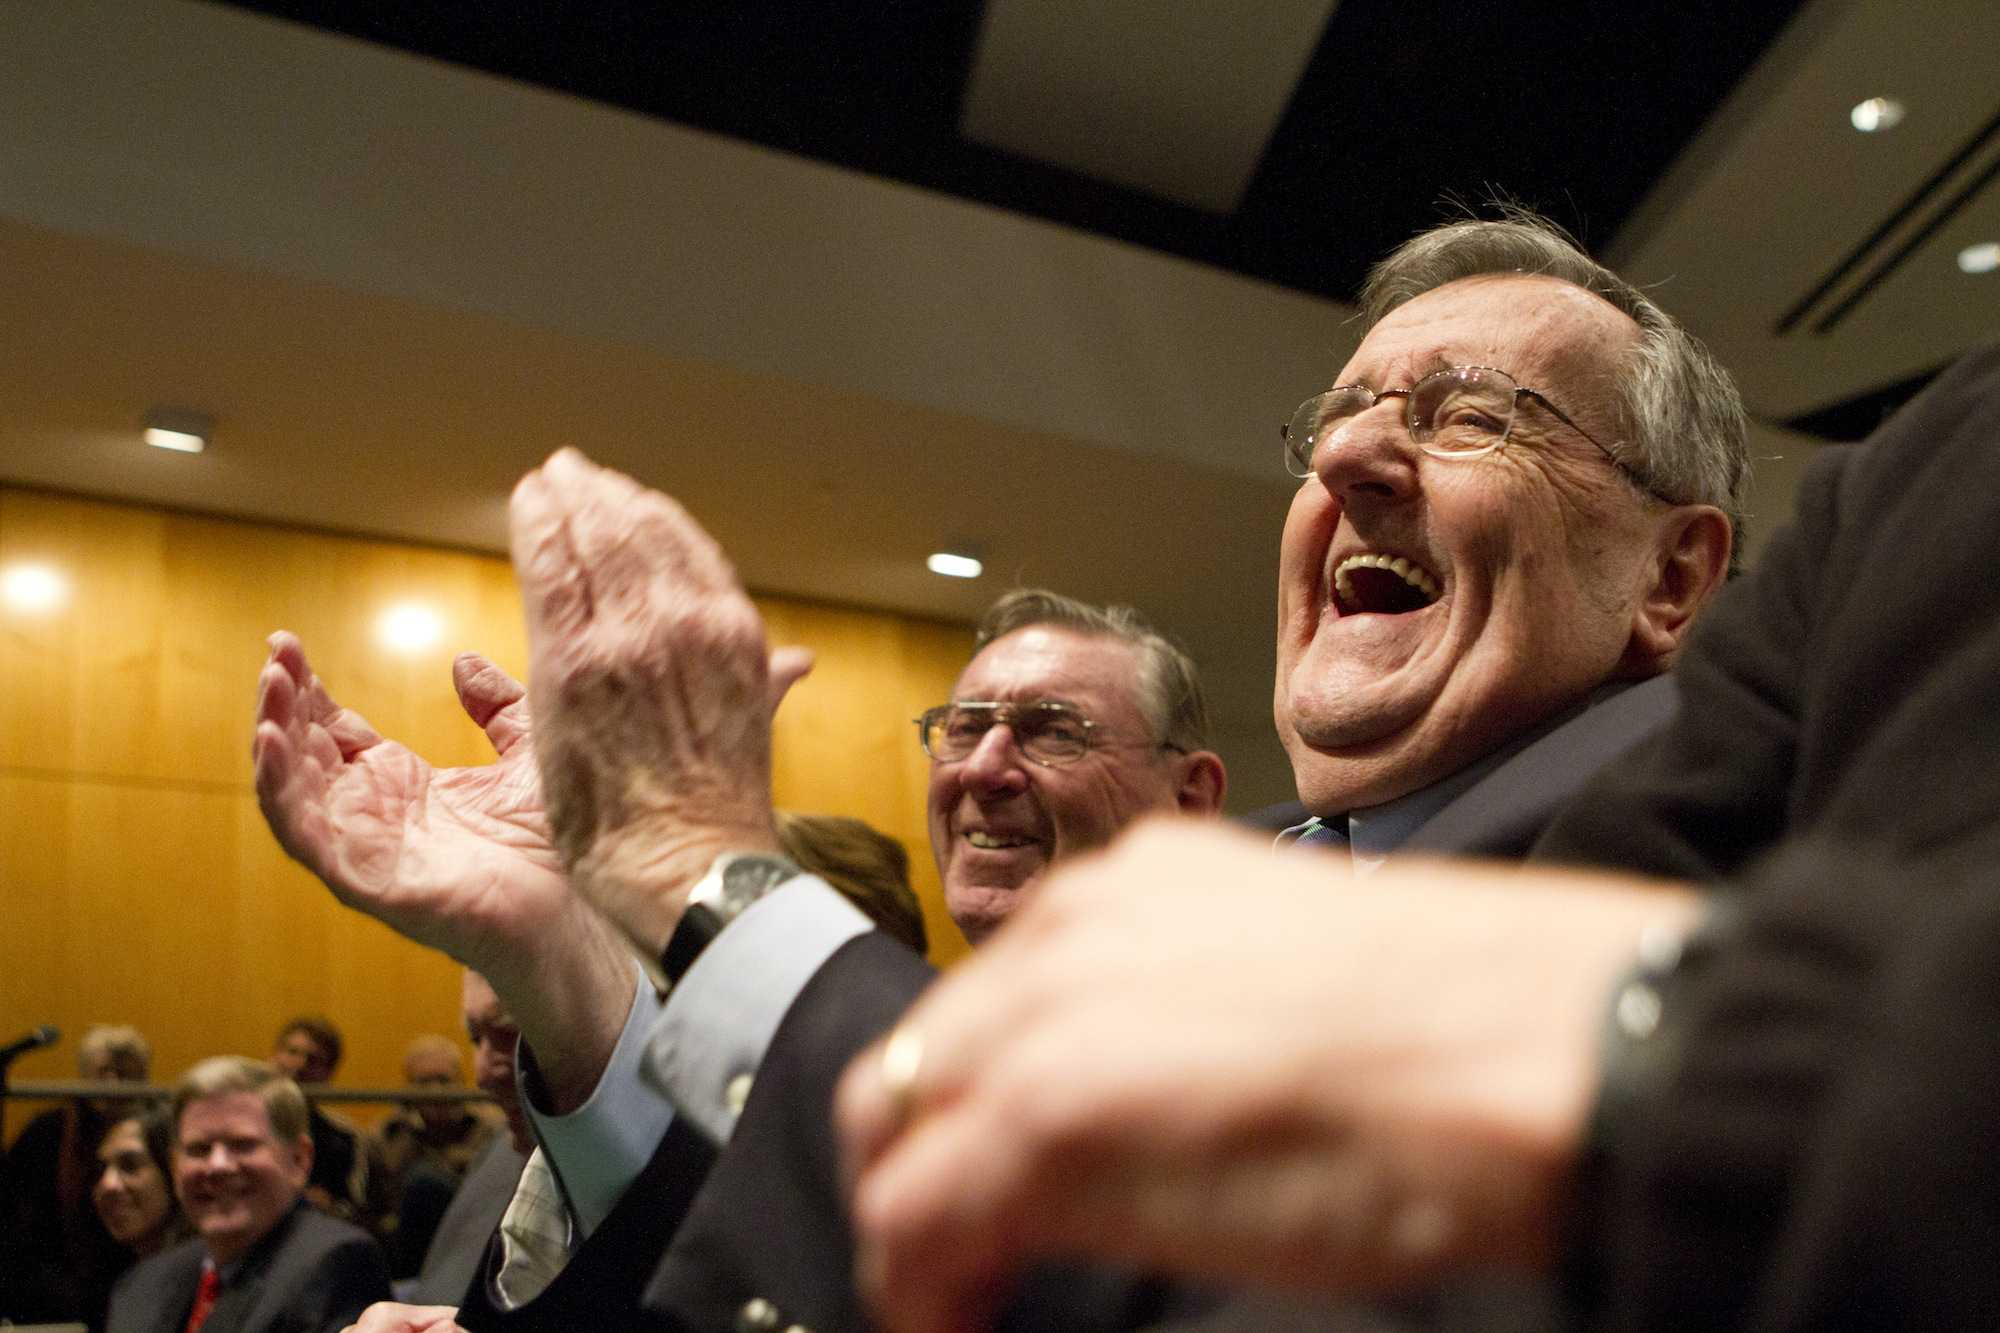 Mark Shields of PBS NewsHour laughs as professor emeritus Newton N. Minow introduces him at Tuesday's Newton Minow lecture. Shields spoke to a full auditorium at the McCormick Tribune Center about his experiences covering the 2012 presidential race and the responsibilities of political journalists.